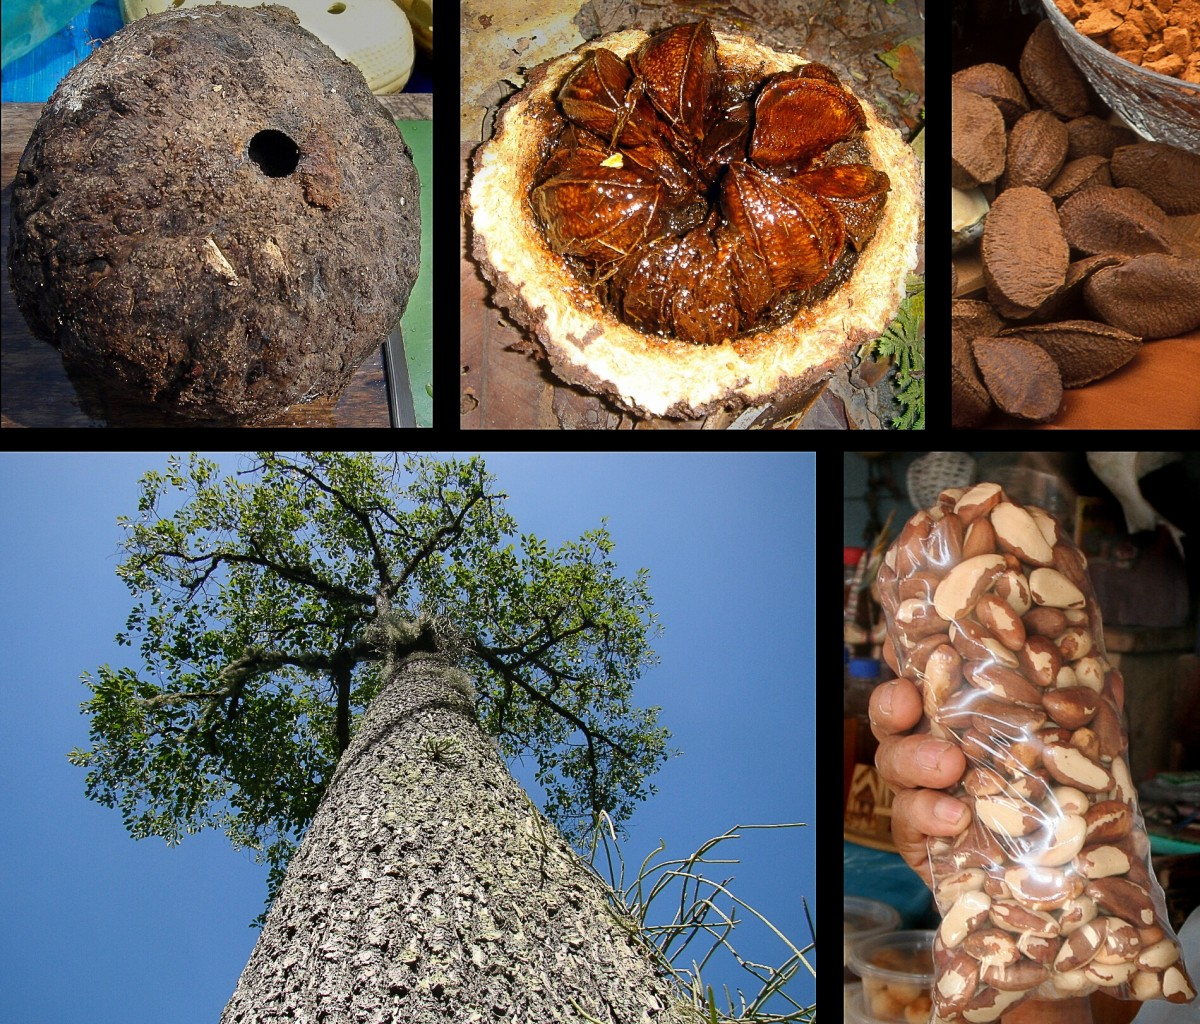 Top left: the fruit of the Brazil nut tree; middle left: the fruit has been opened up to show the seeds (nuts) inside